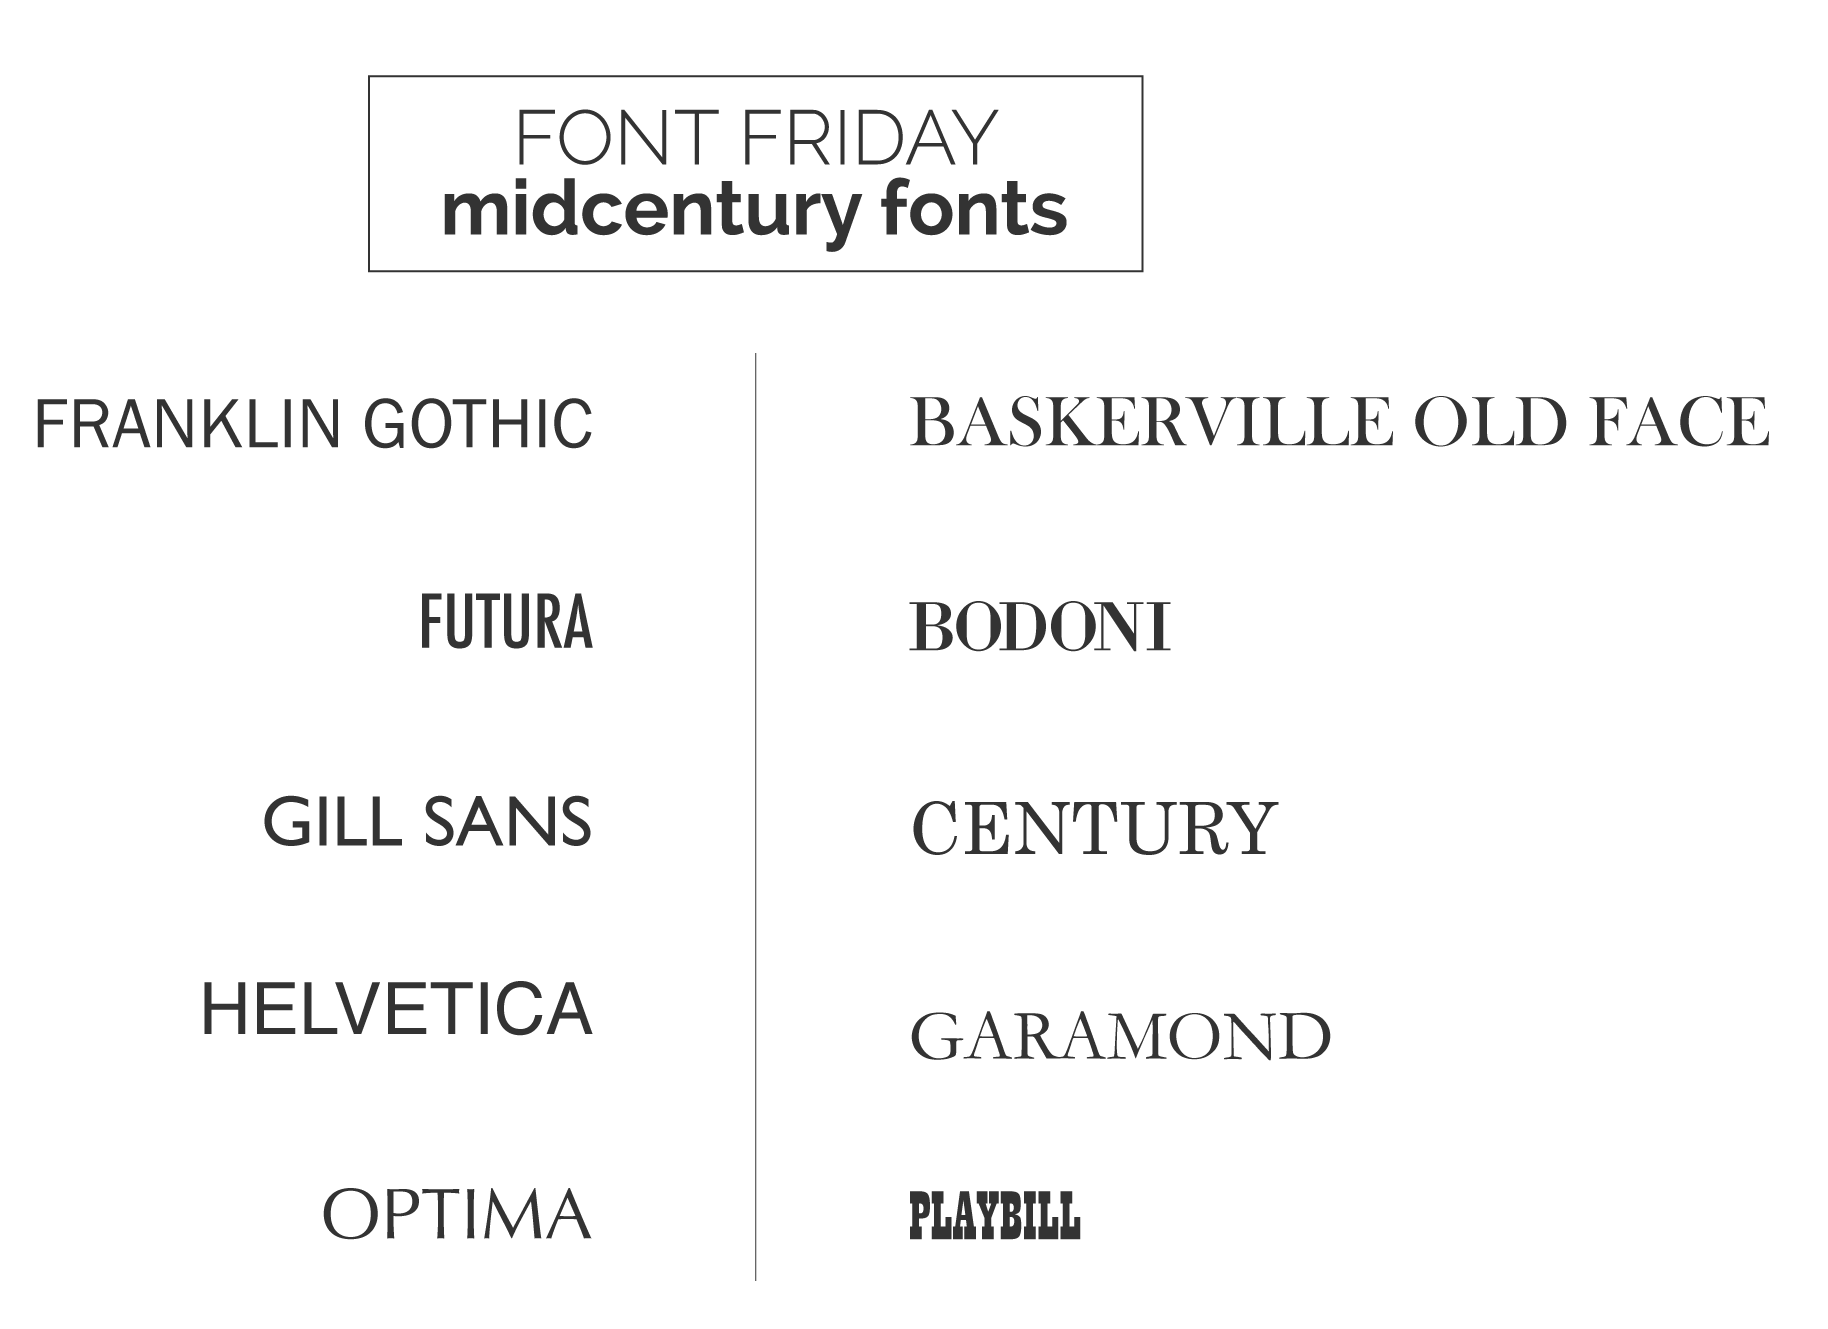 Font Friday Mid Century Fonts Modern Fonts Invitation Fonts Franklin Gothic